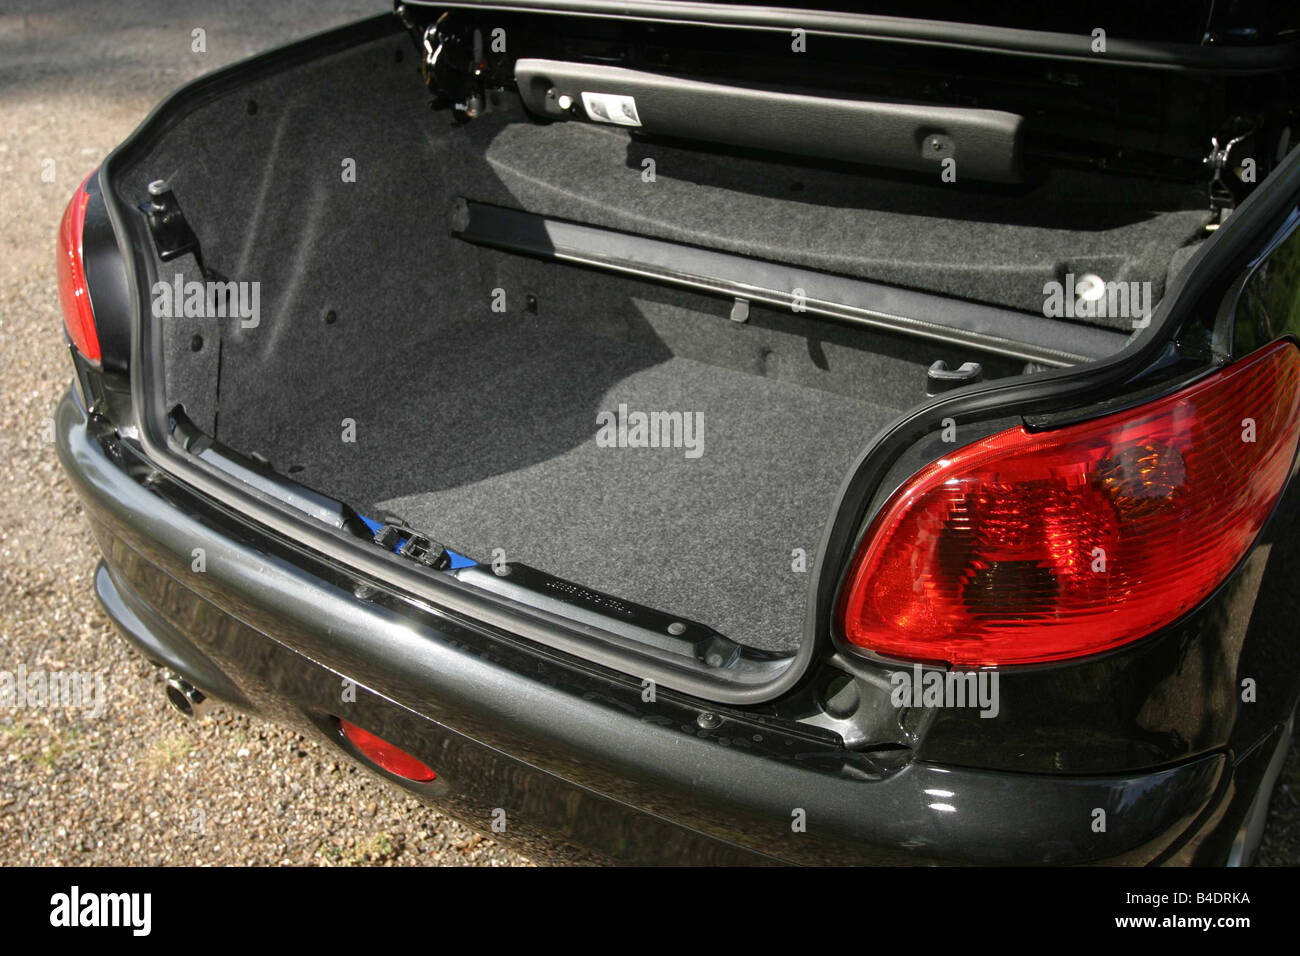 Car, Peugeot 206 CC, Convertible, model year 2000-, black, open top, view into boot, technique/accessory, accessories Stock Photo